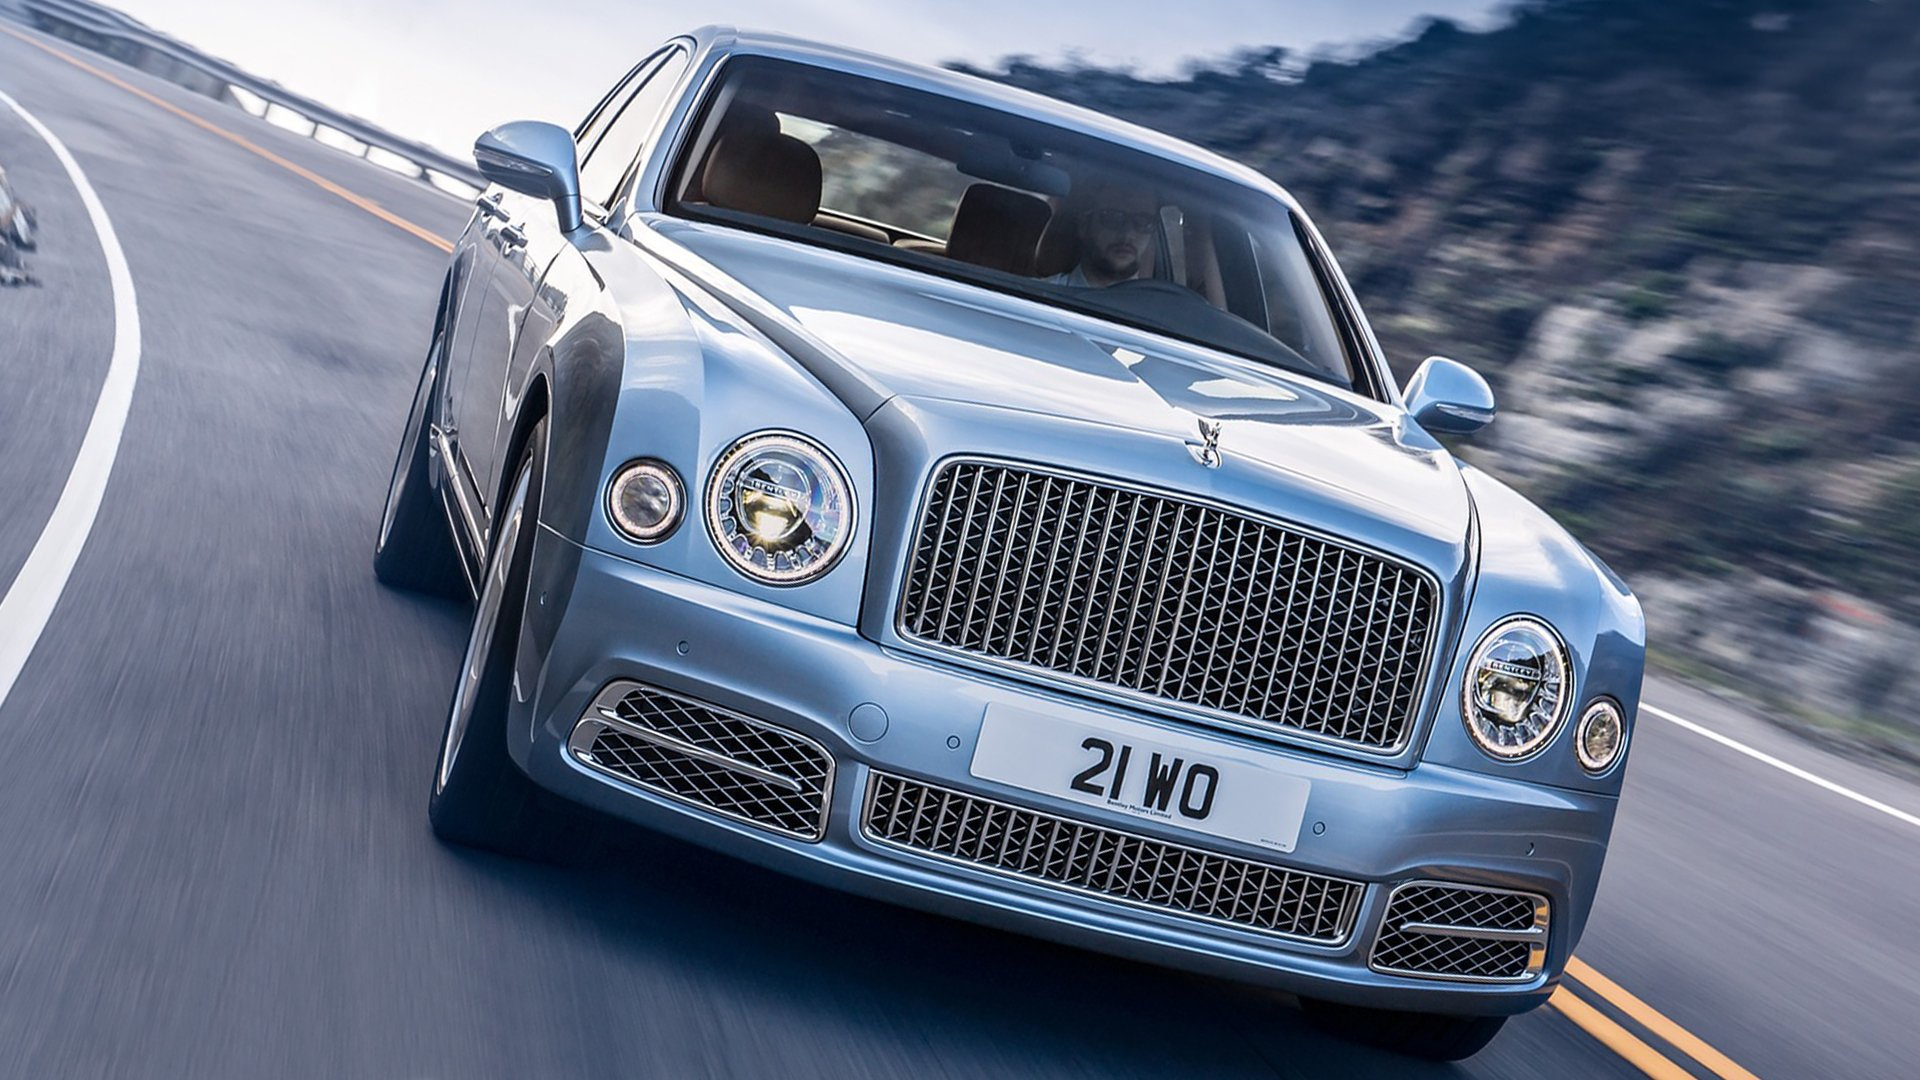 Concept 2019 Bentley Mulsanne Full HD